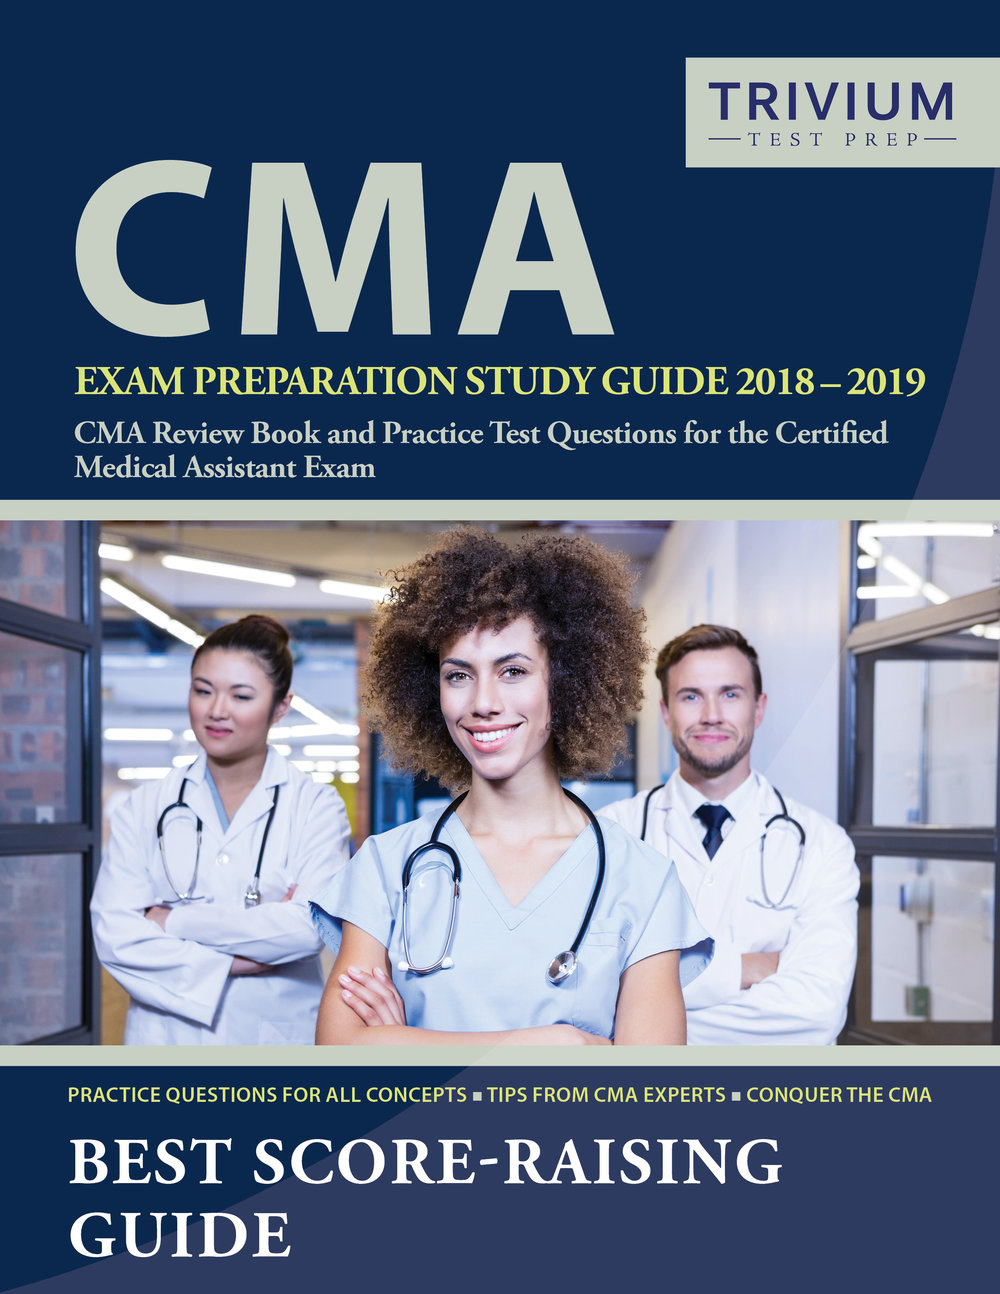 CMA Exam Preparation Study Guide Review Book and Practice Test Questions